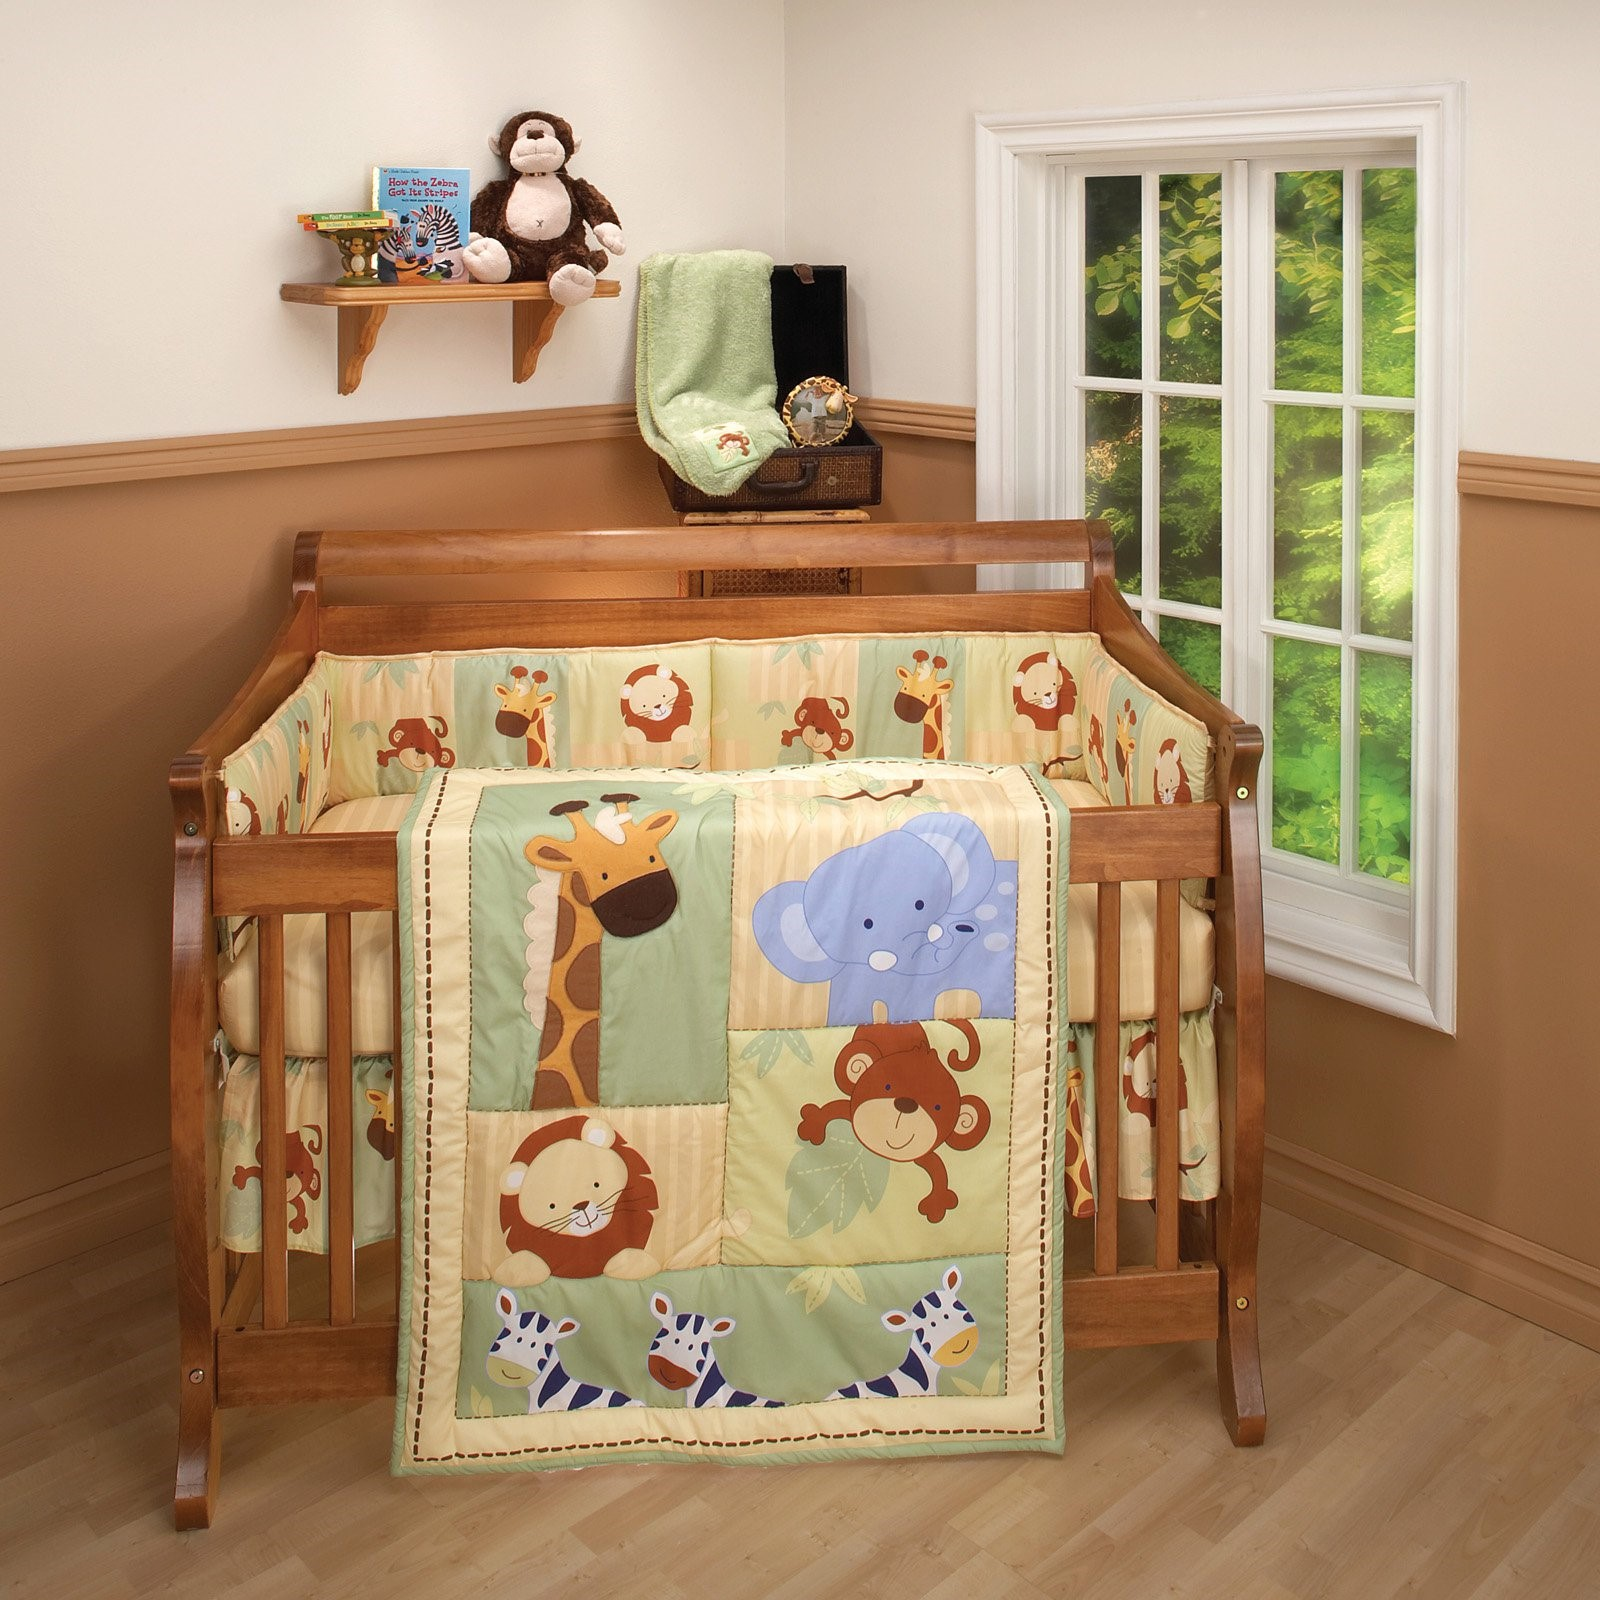 Little Bedding by NoJo Safari Kids 3 Piece Crib Bedding Set